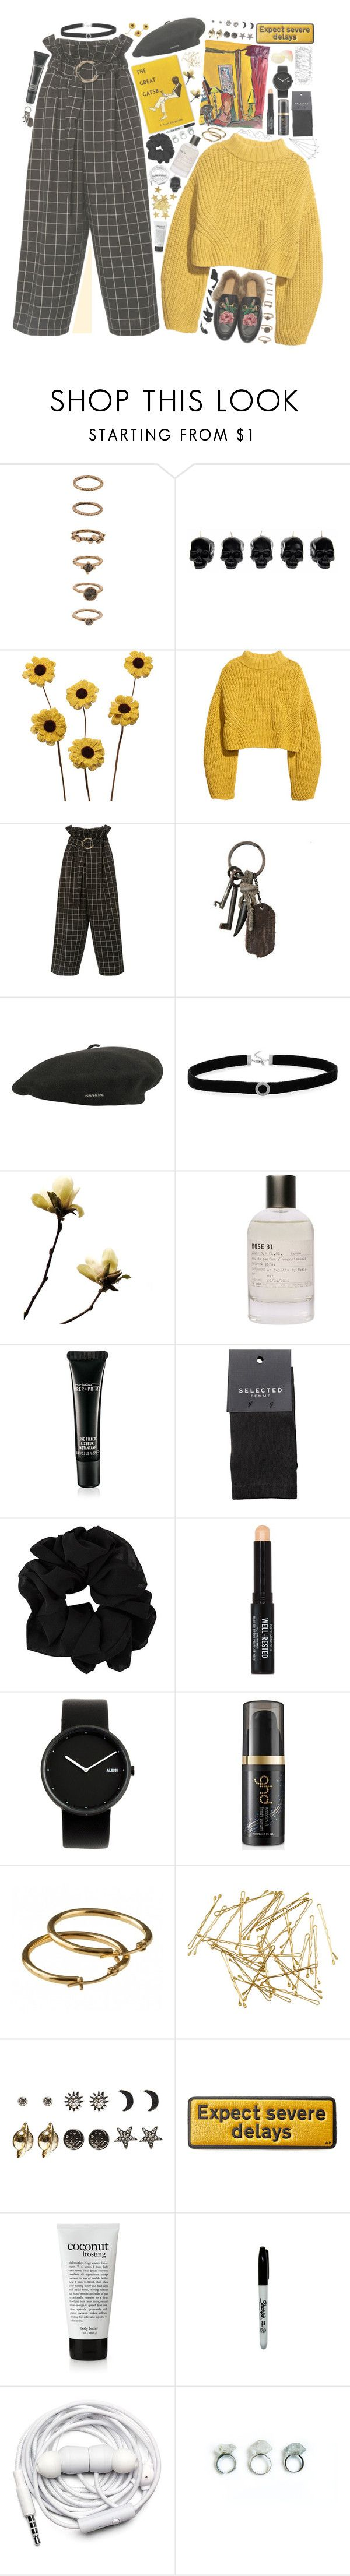 """""""MELLOW"""" by banngtanboy ❤ liked on Polyvore featuring Forever 21, D.L. & Co., ZiaBella, H&M, Rejina Pyo, AllSaints, kangol, BillyTheTree, WALL and Le Labo"""